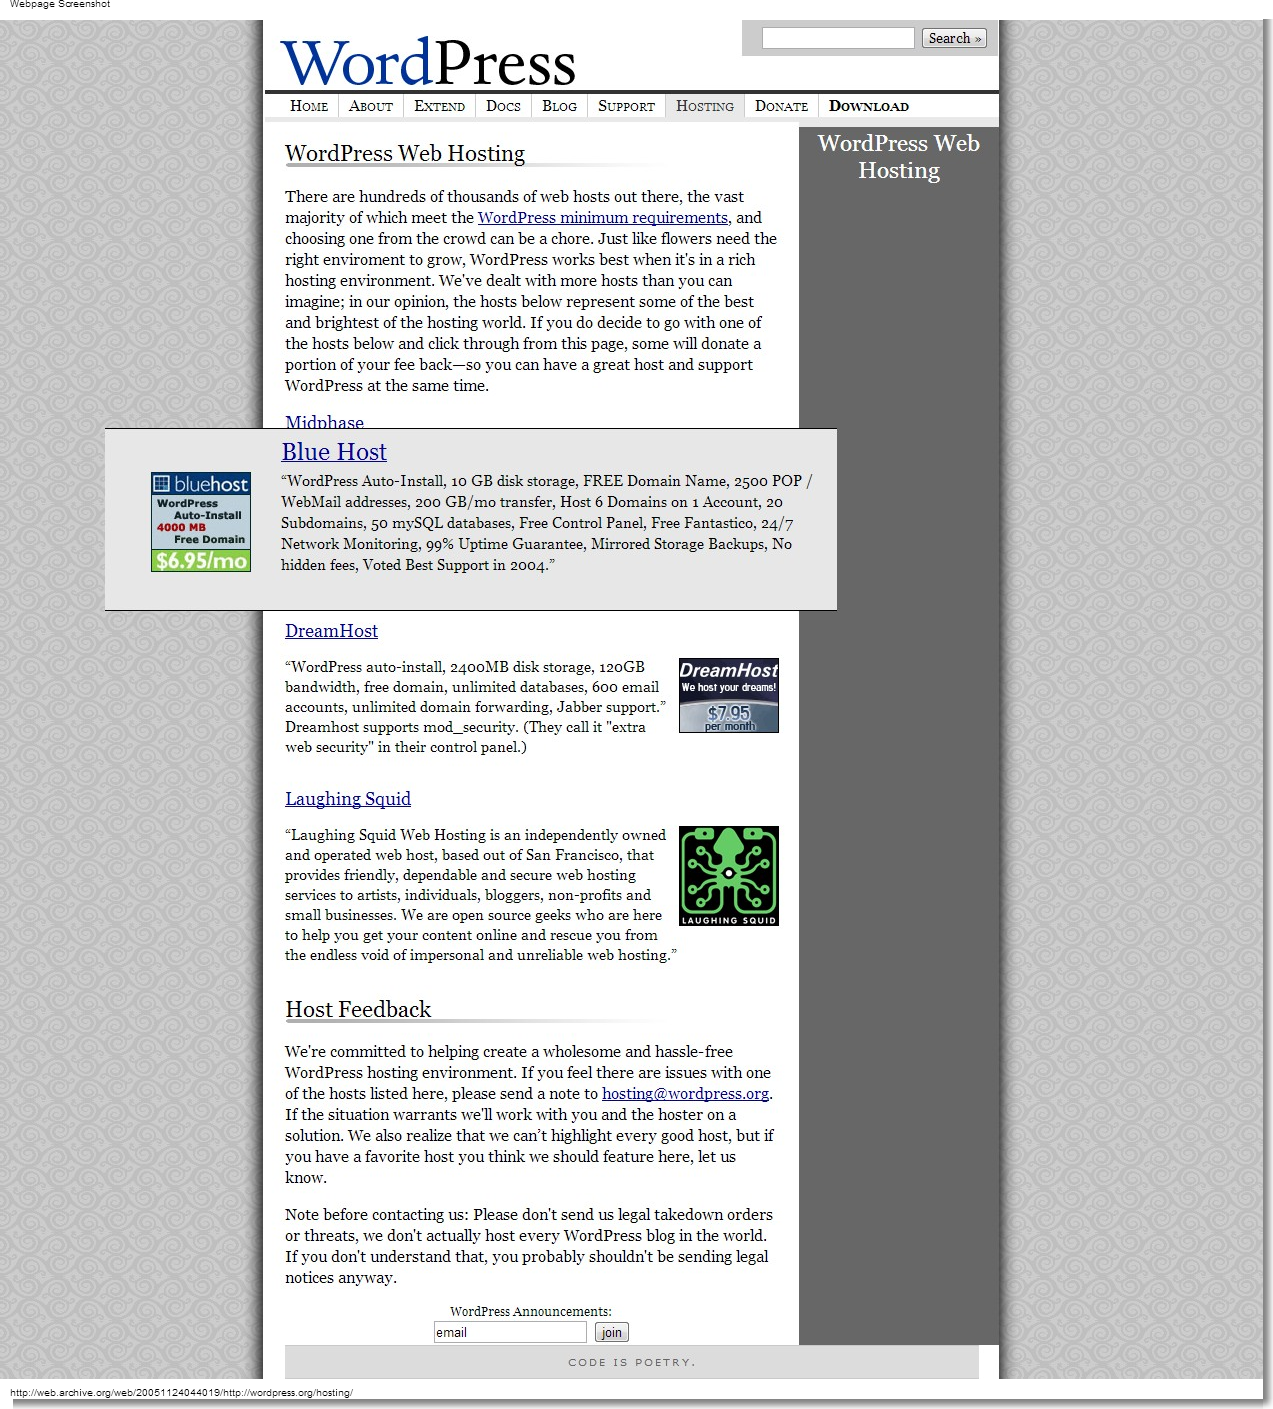 November 24, 2005 - WordPress - WordPress Web Hosting